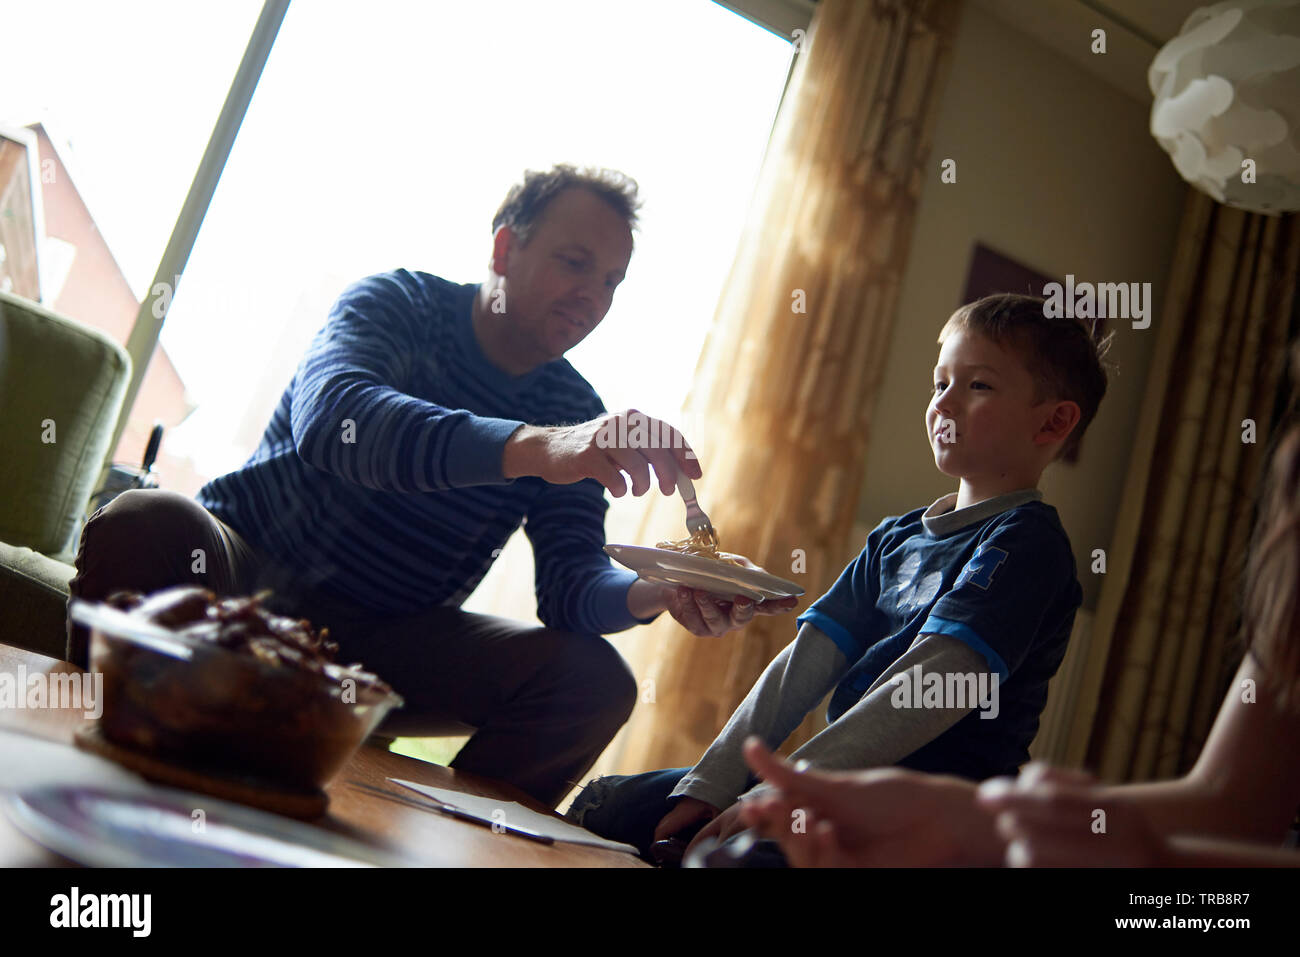 Father helping his cute young son to eat his lunch in the living room - Stock Image